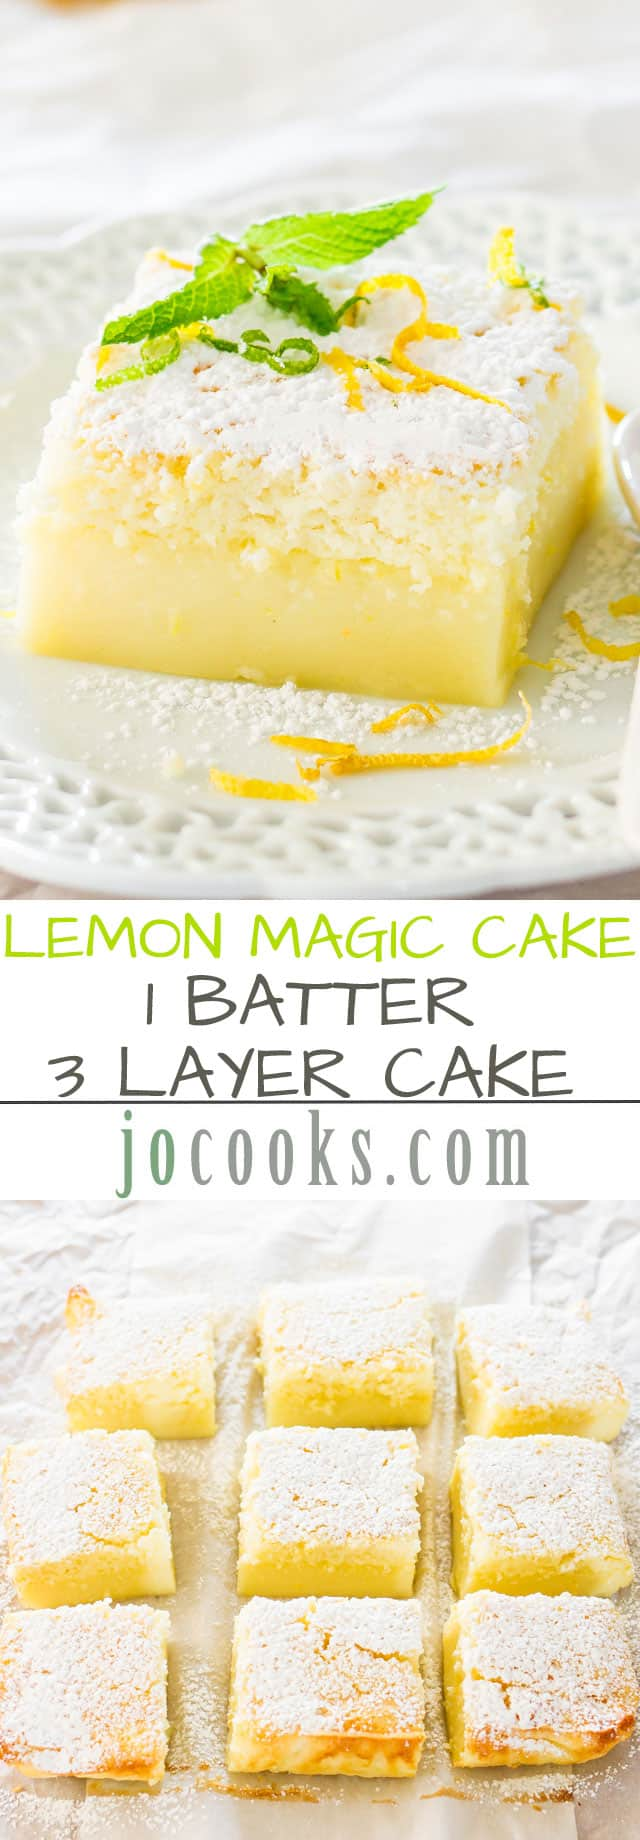 Lemon Magic Cake Recipe via Jo Cooks - one simple batter that turns into a 3 layer cake. Simply magical. The popular magic cake now in lemon flavor. The BEST Easy Lemon Desserts and Treats Recipes - Perfect For Easter, Mother's Day Brunch, Bridal or Baby Showers and Pretty Spring and Summer Holiday Party Refreshments! #lemondesserts #lemonrecipes #easylemonrecipes #lemon #lemontreats #easterdesserts #mothersdaydesserts #springdesserts #holidaydesserts #summerdesserts